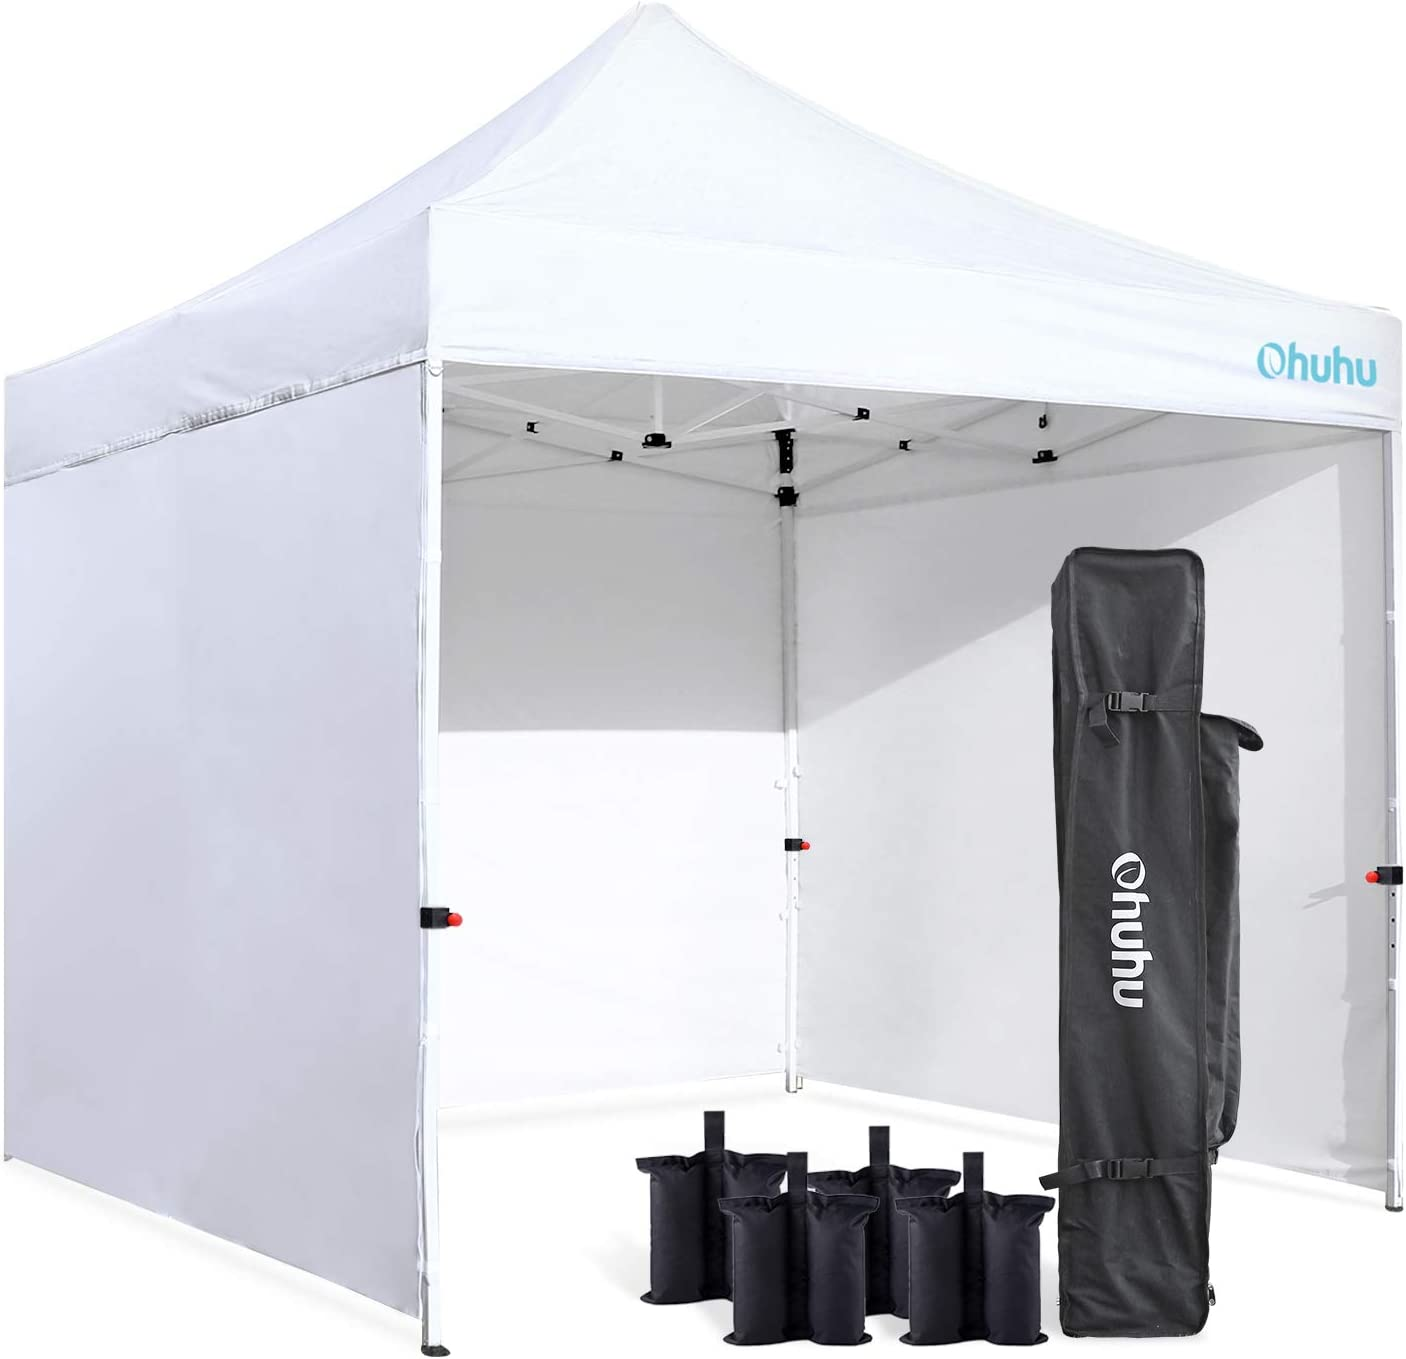 Ohuhu Sturdy 10 x 10 FT Pop-up Canopy Tent